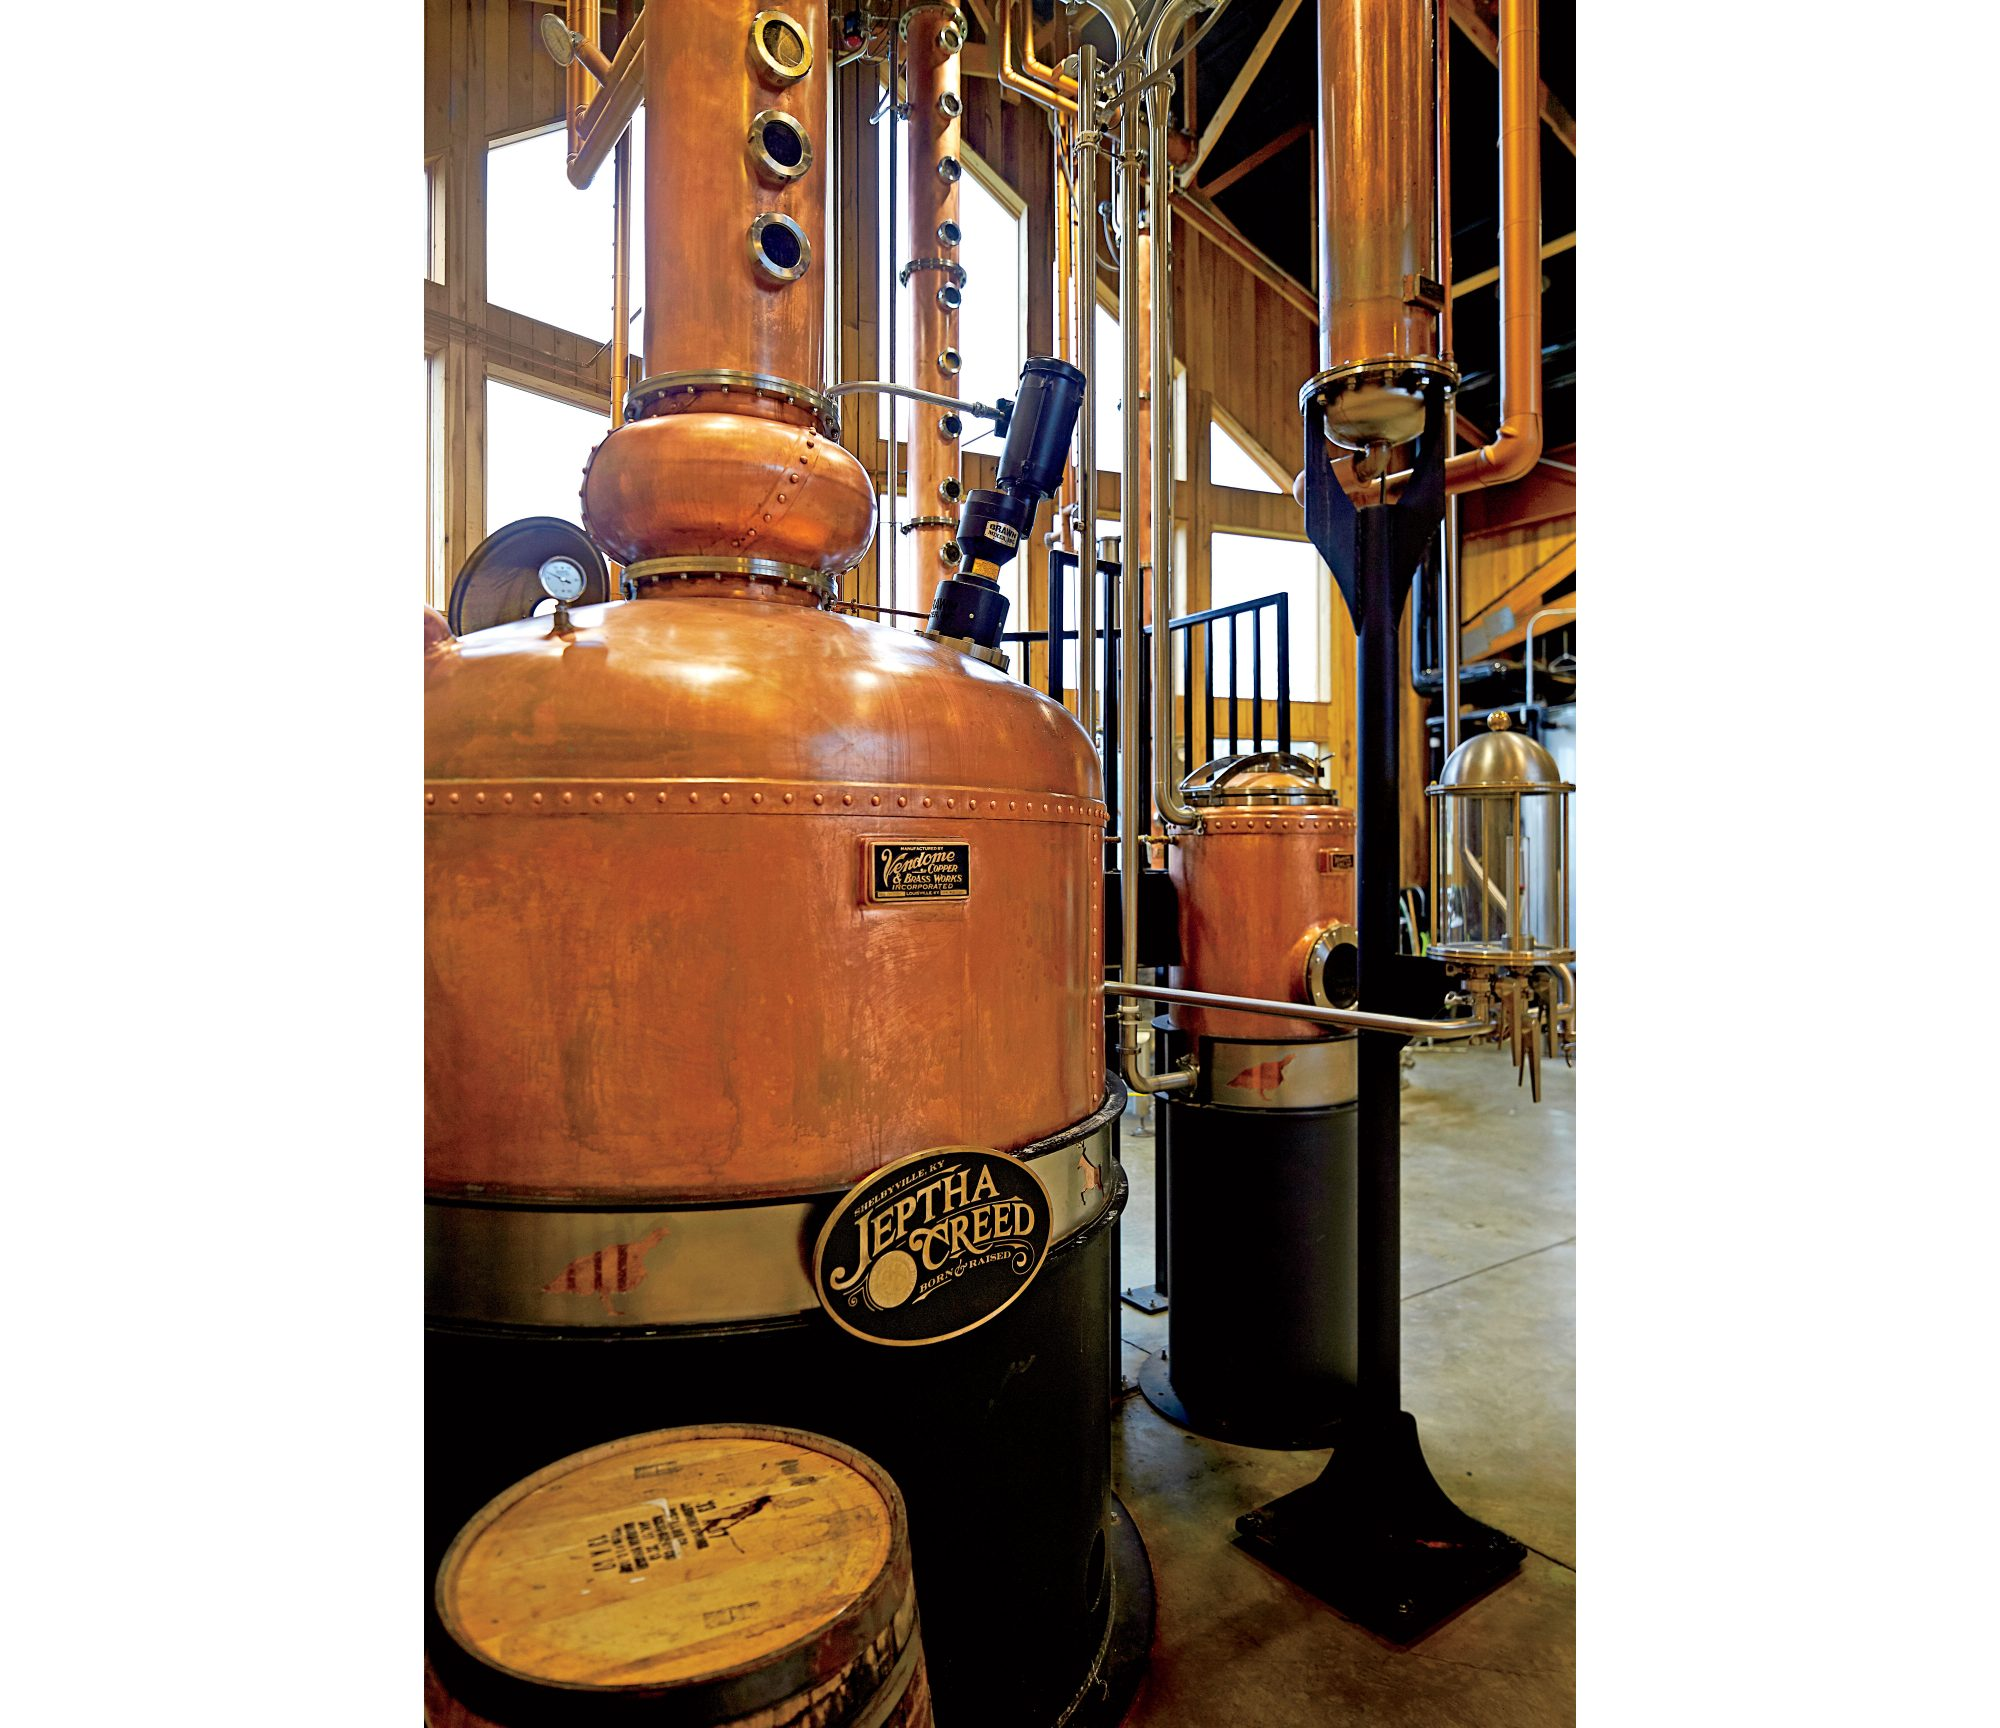 Jeptha Creed Bourbon Distillery